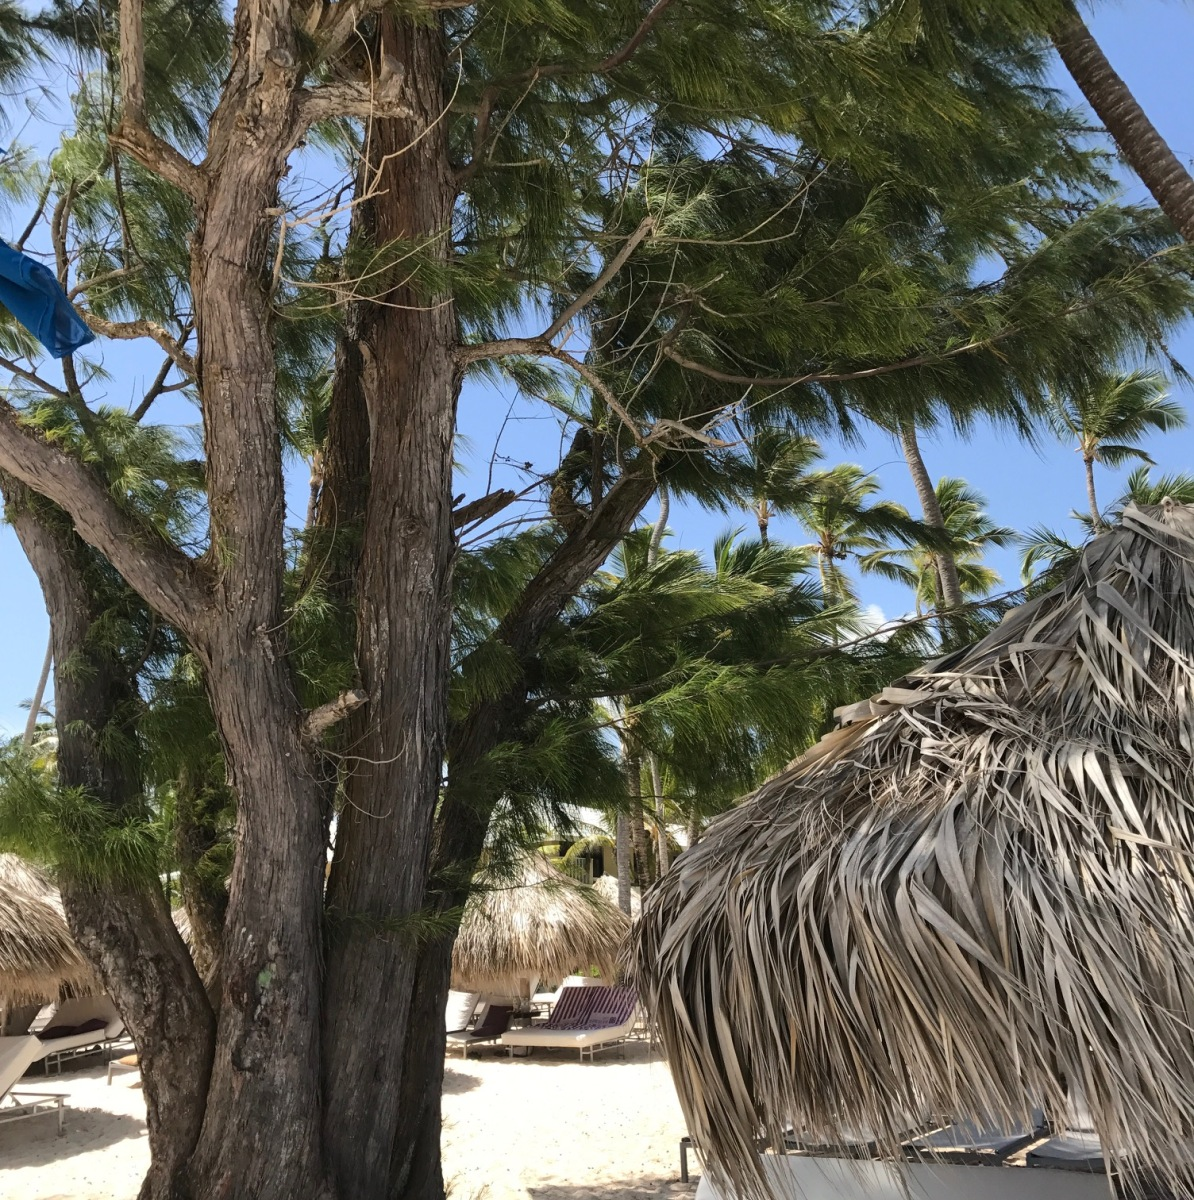 Travel Journal: Punta Cana